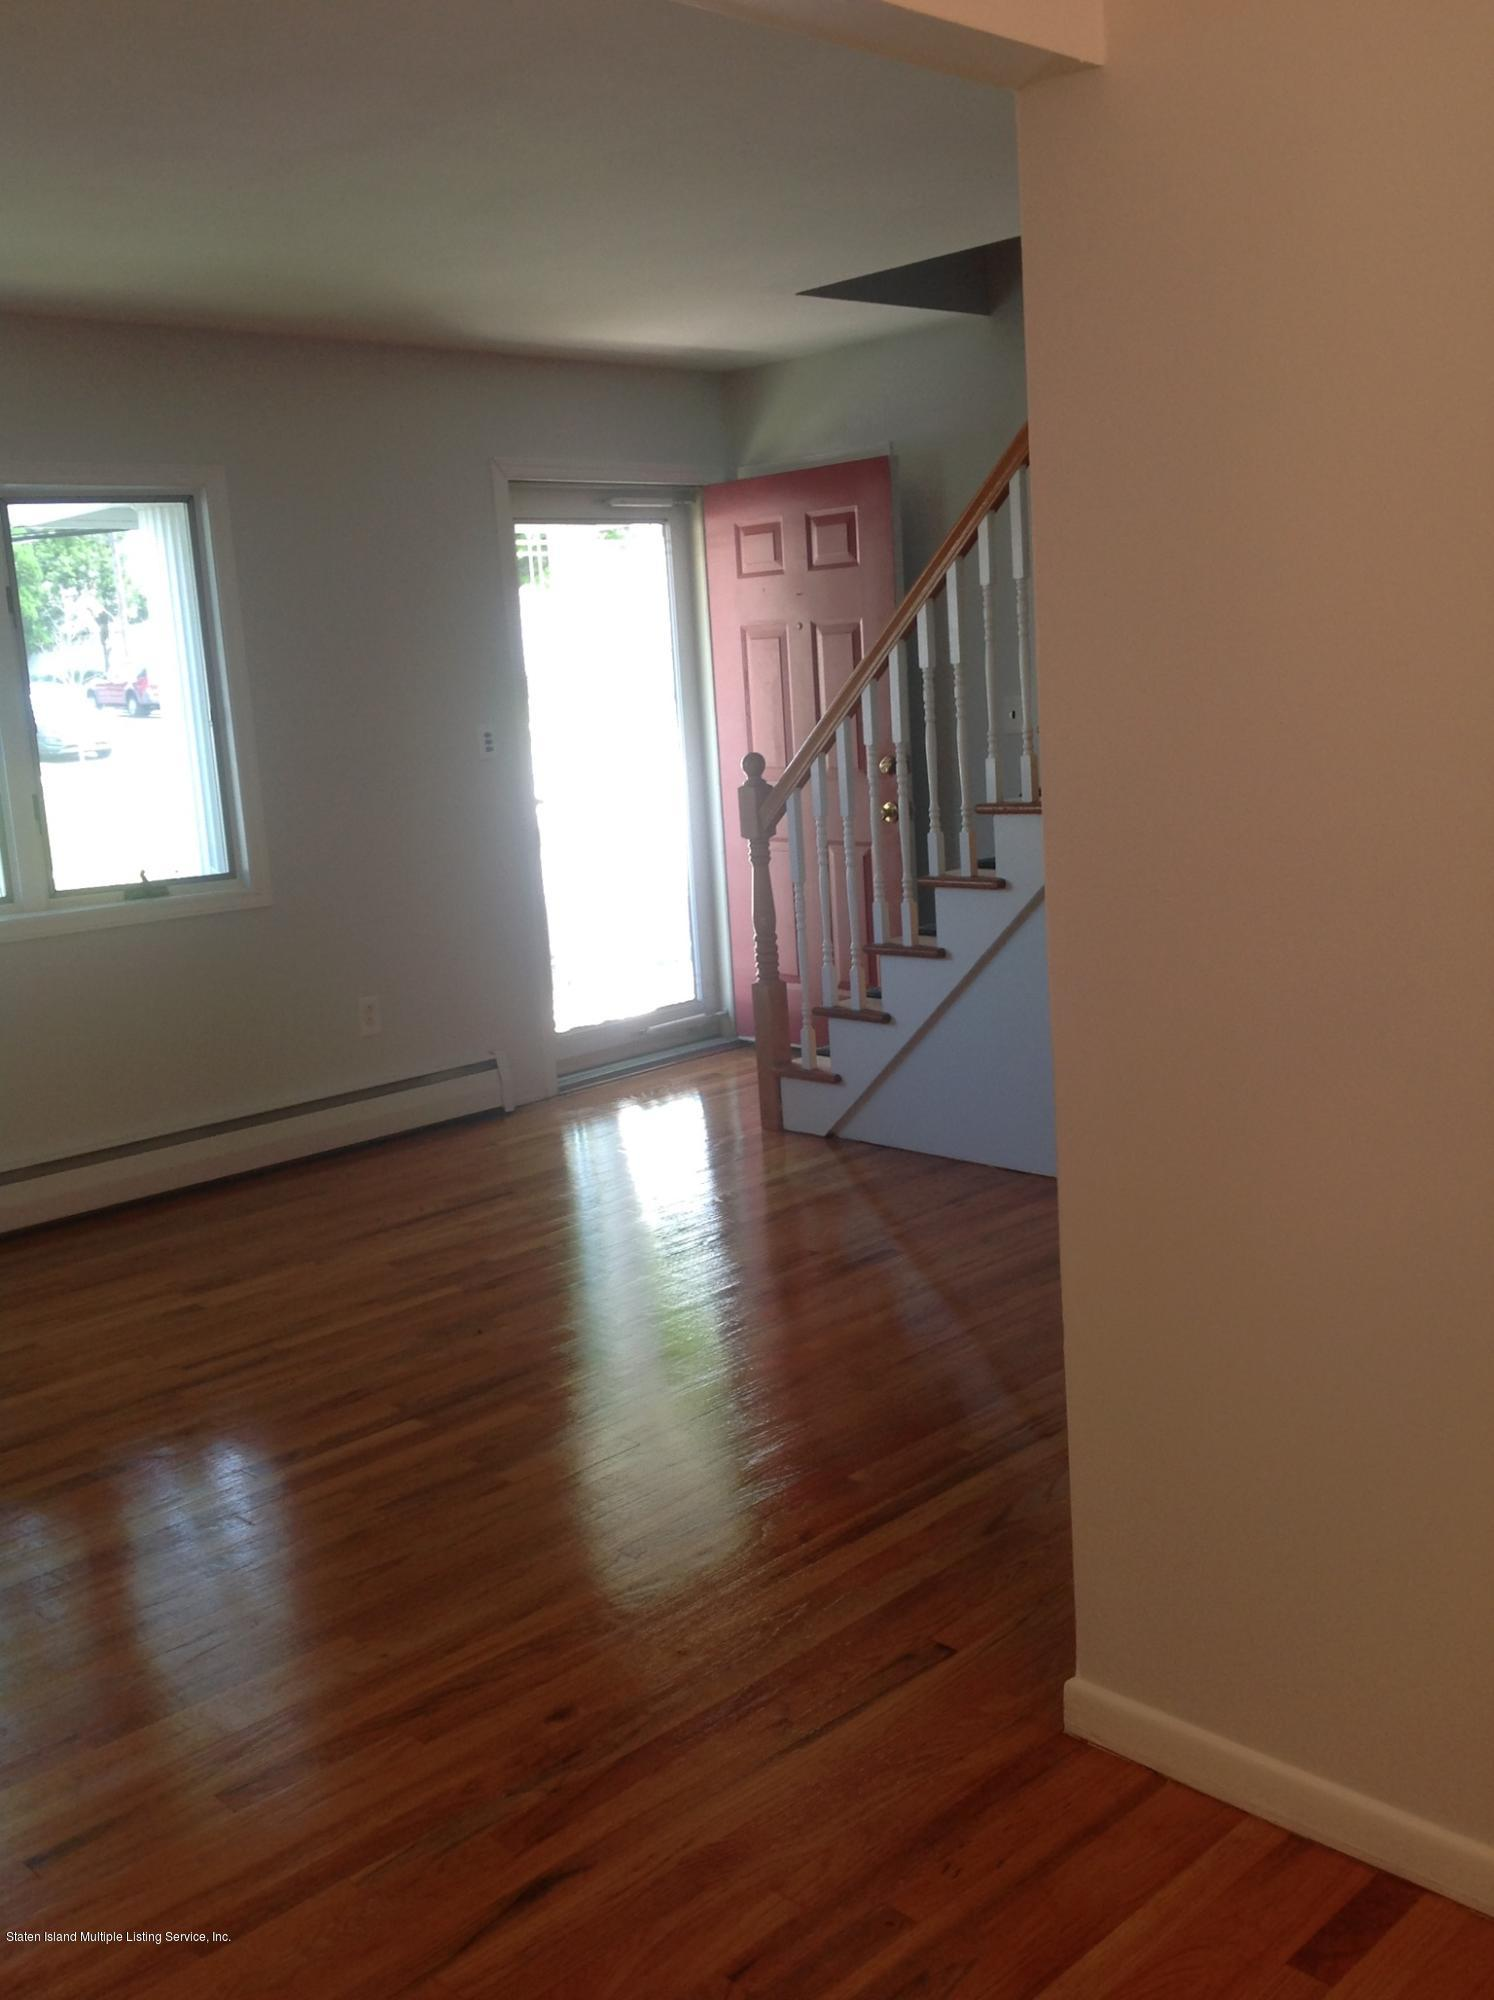 Single Family - Detached 28 Queen Street  Staten Island, NY 10314, MLS-1148779-10